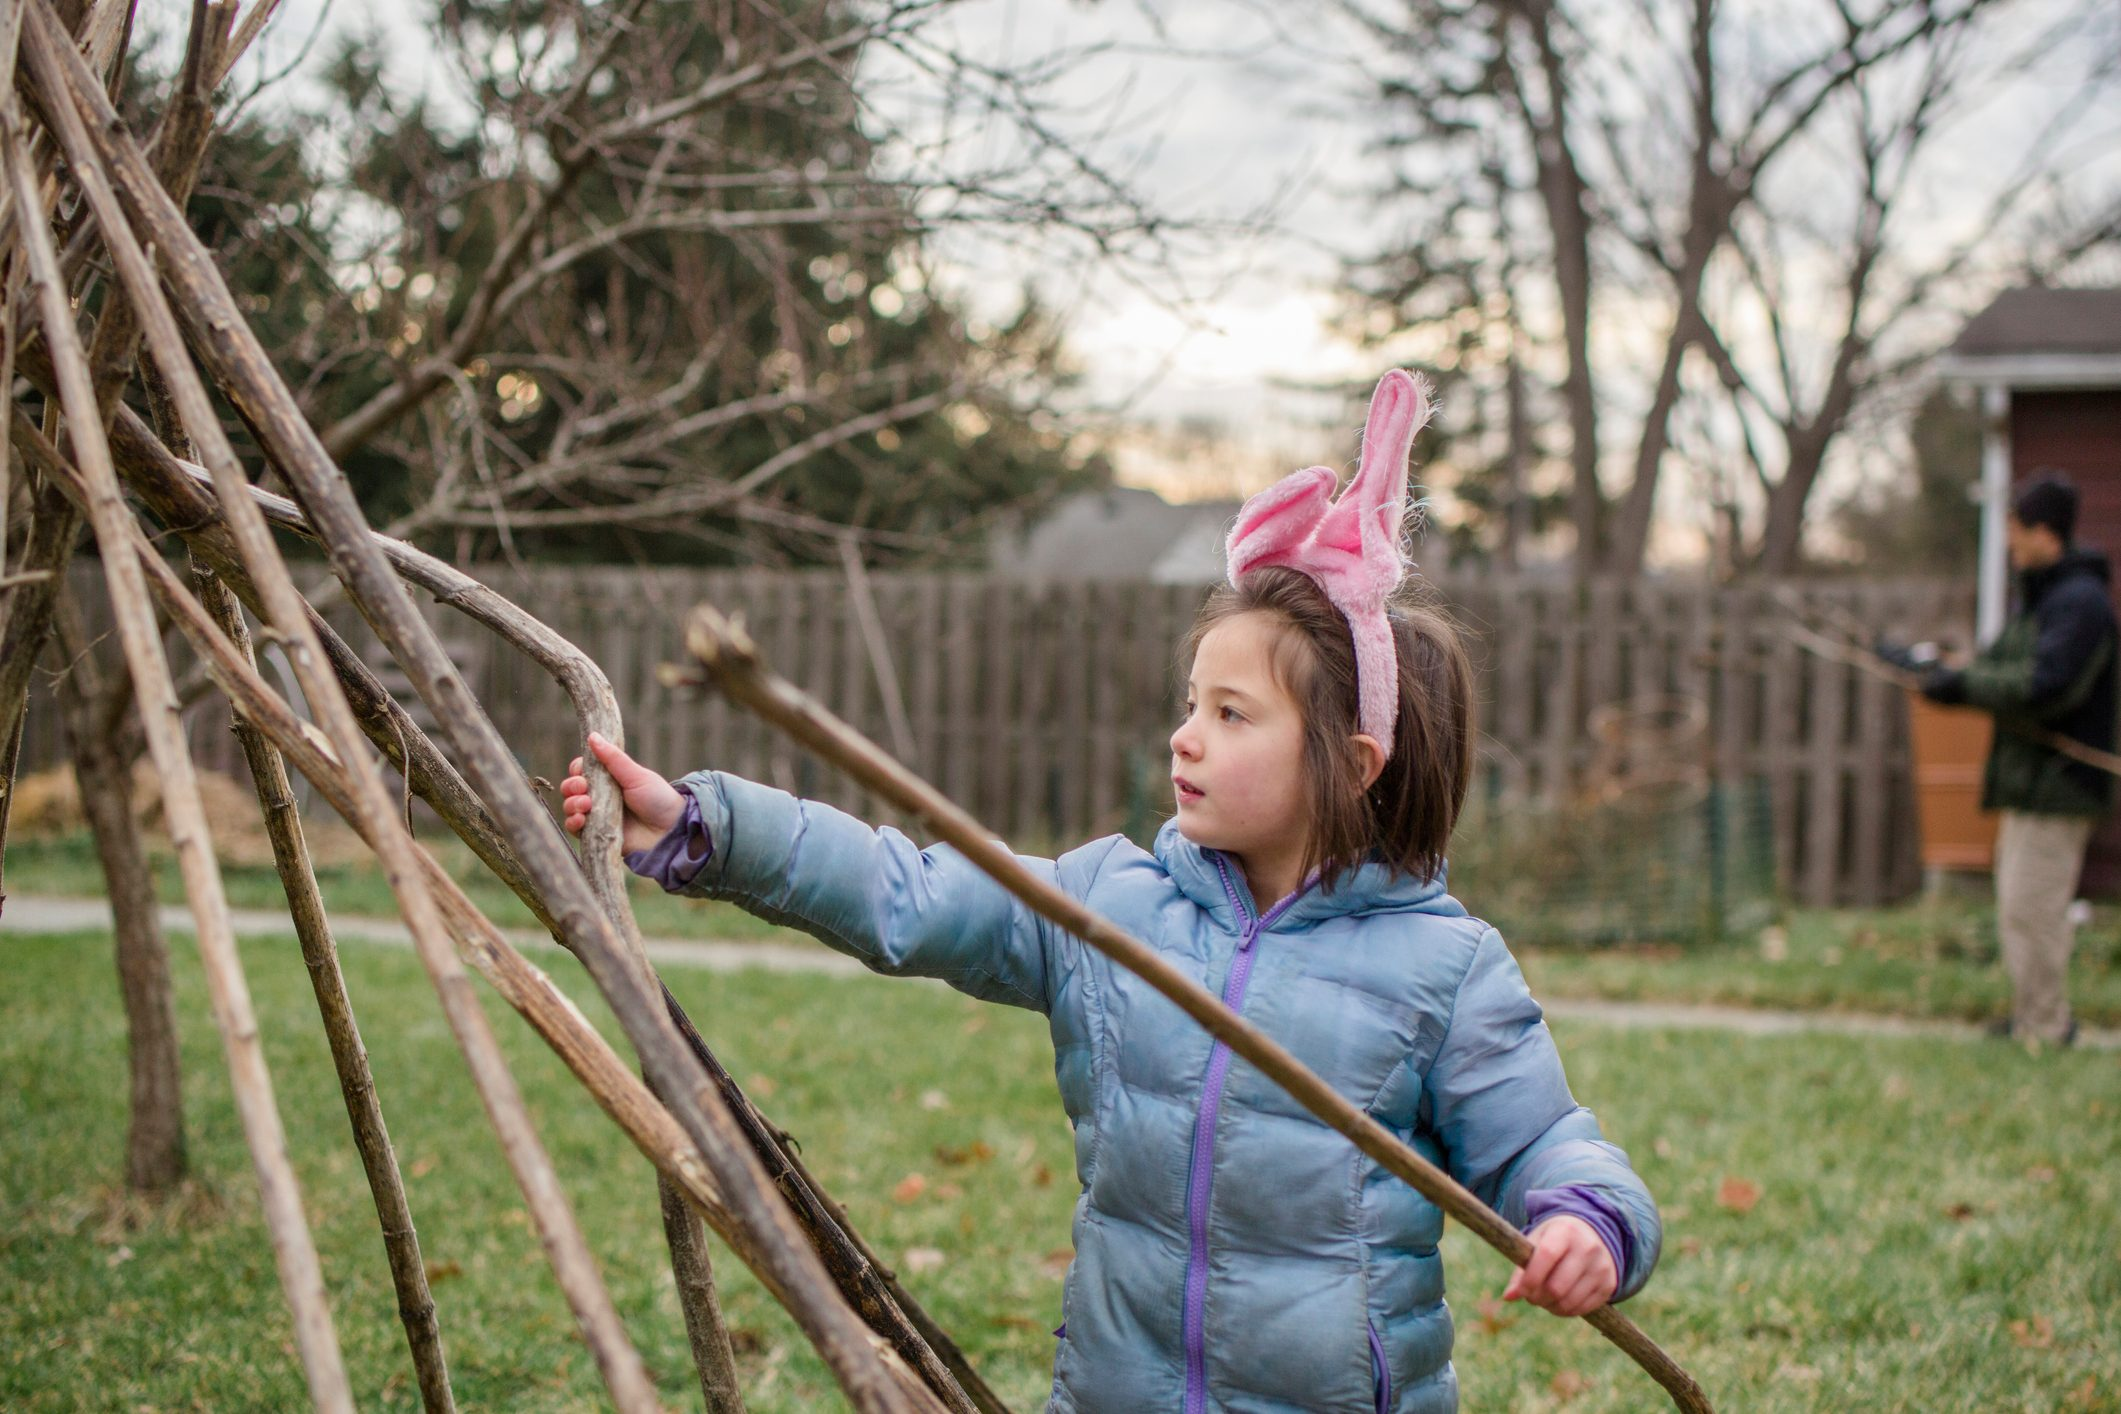 A little girl in bunny ears and jacket builds fort with father in yard